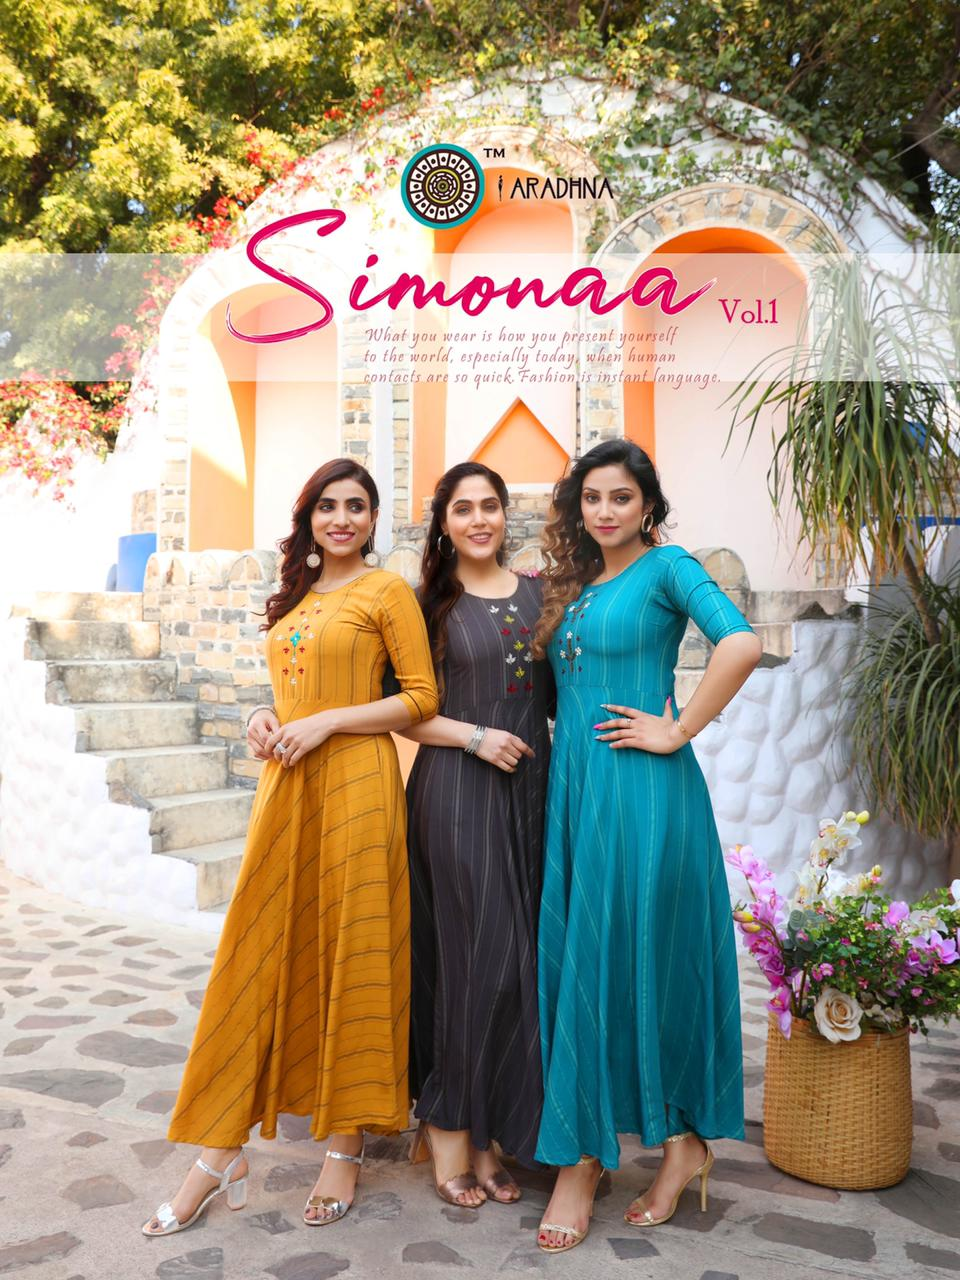 Aradhna Simonaa Vol 1 Kurti Wholesale Catalog 8 Pcs 3 - Aradhna Simonaa Vol 1 Kurti Wholesale Catalog 8 Pcs